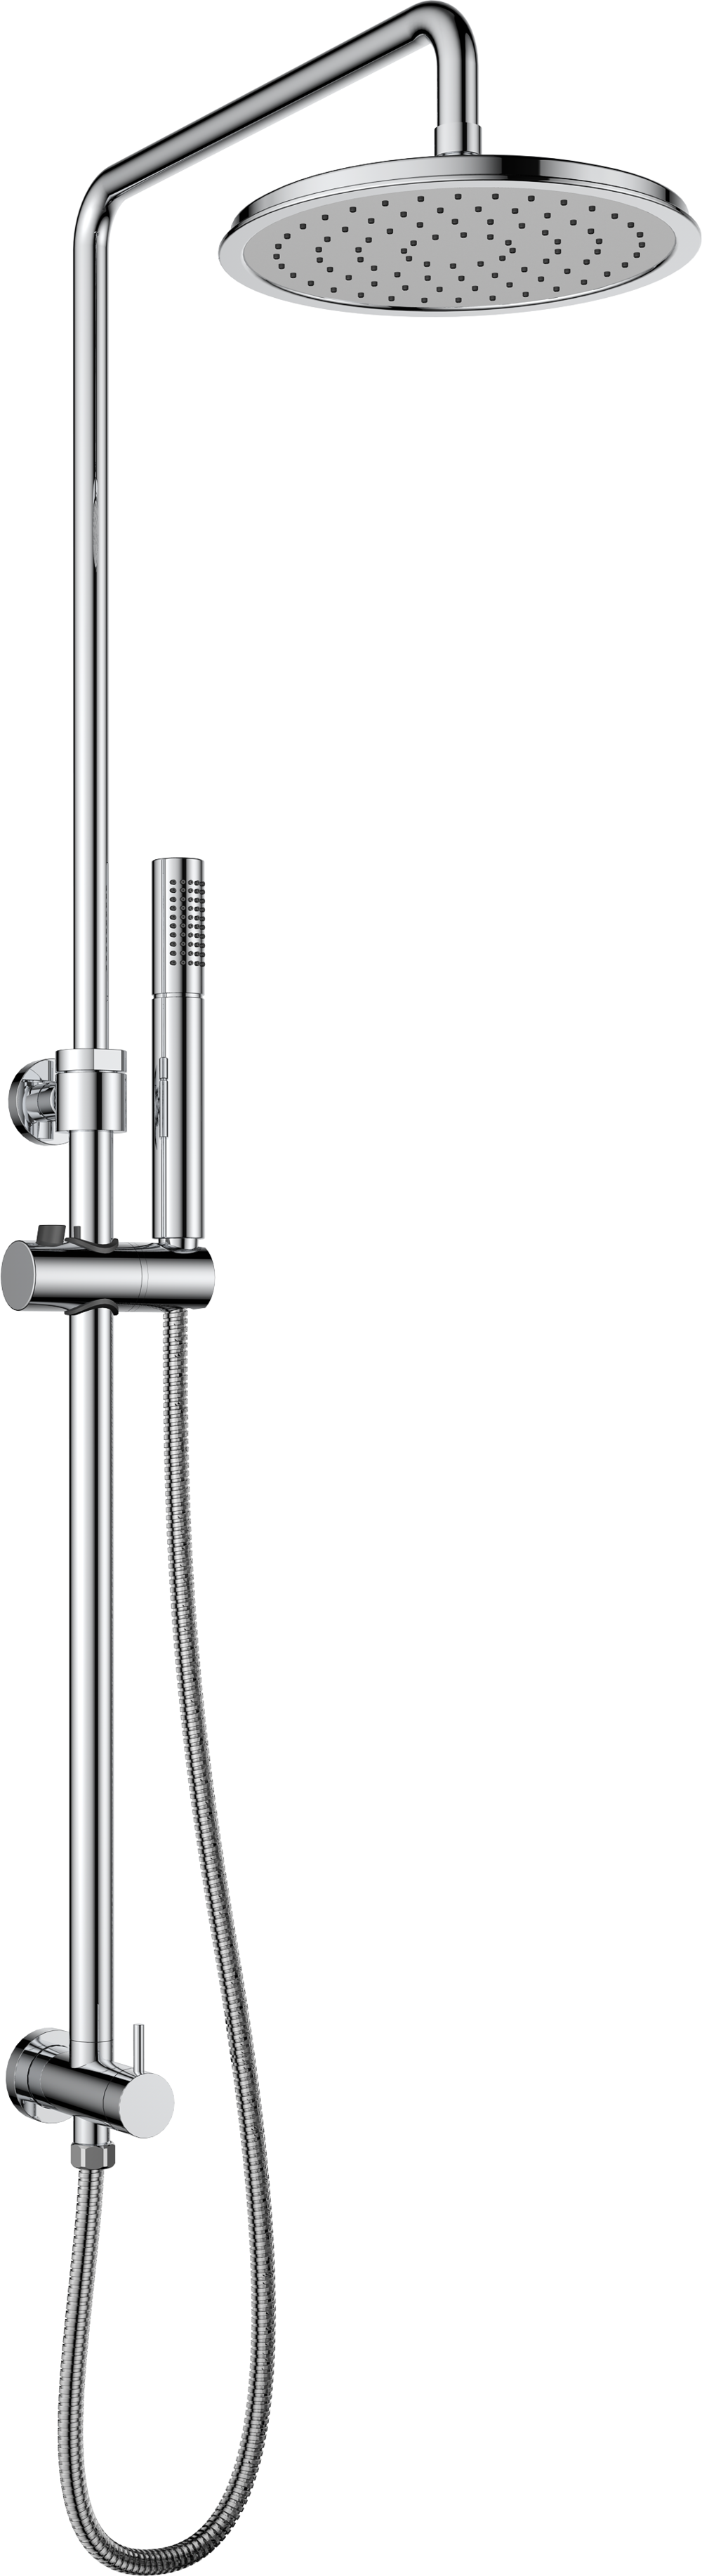 7367-103: Sliding shower set